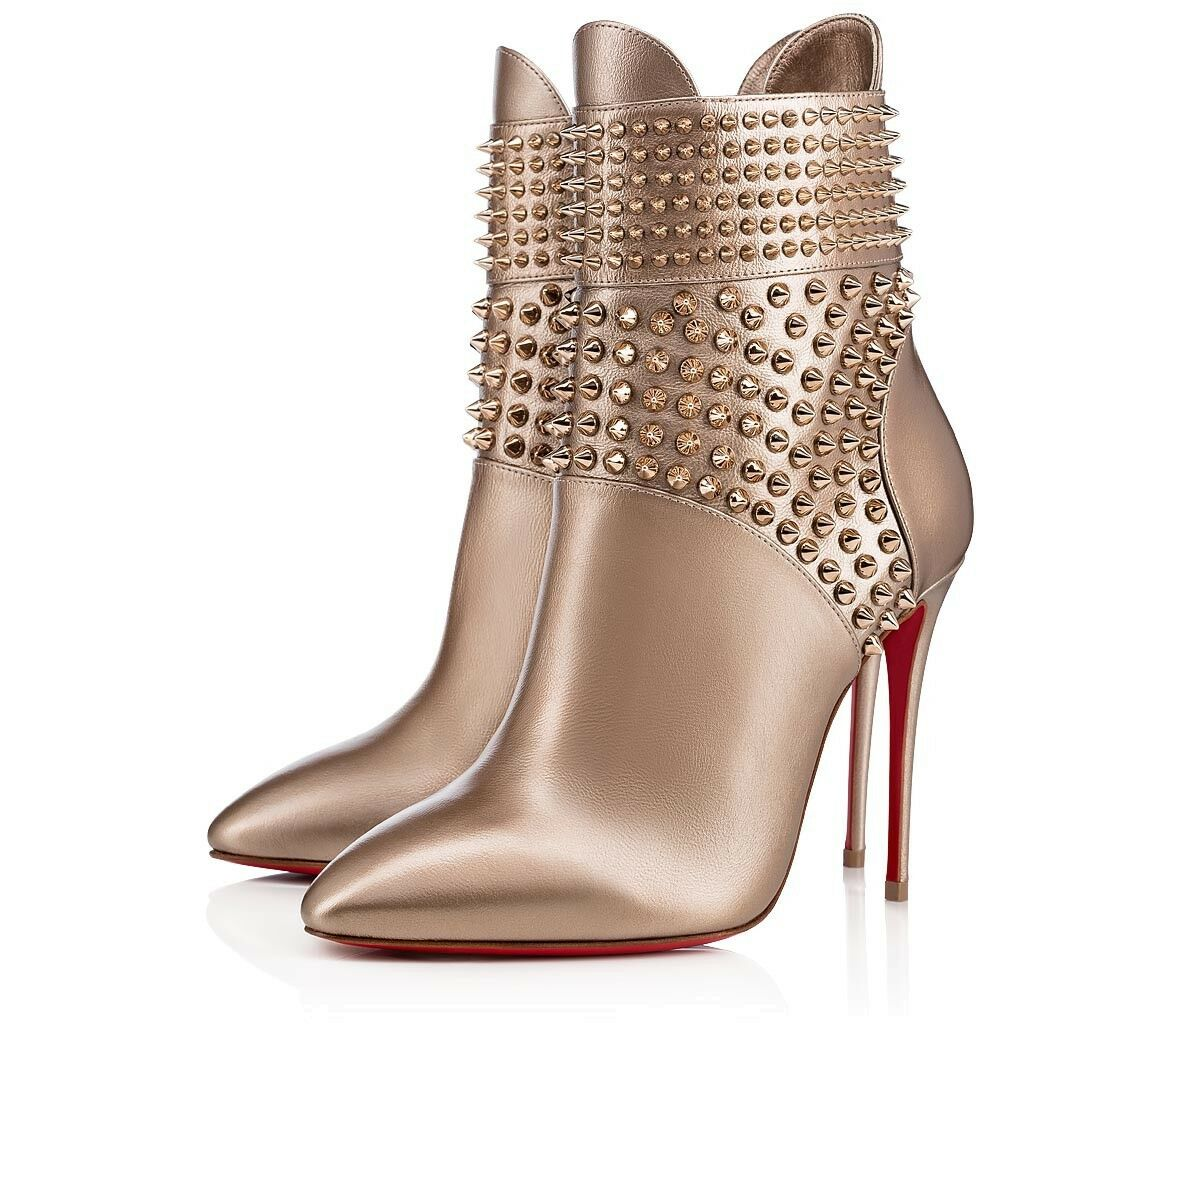 NIB Christian Louboutin Hongroise 100 Colombe gold Spike Ankle Heel Bootie 36.5